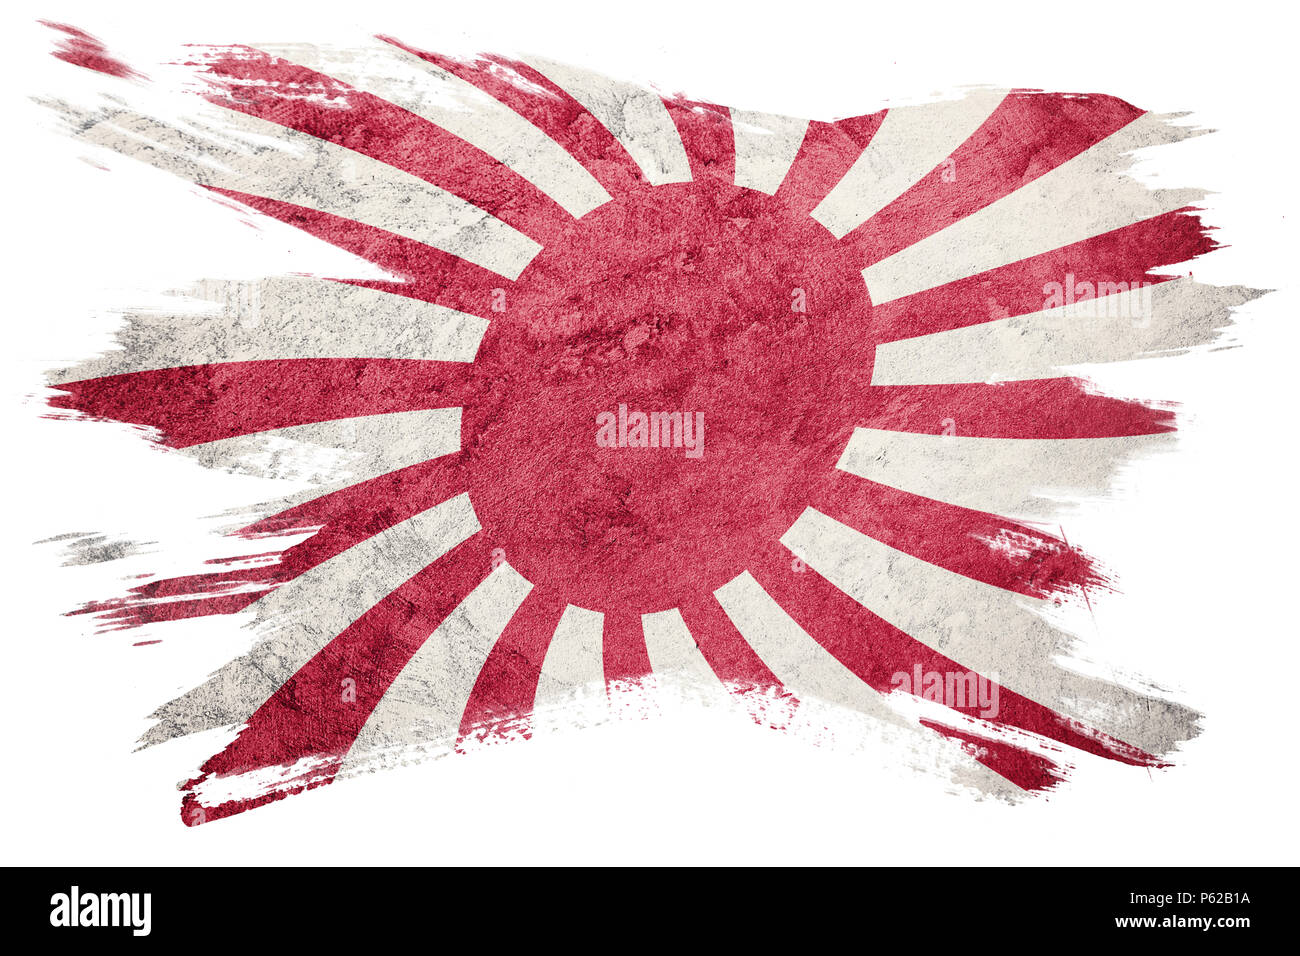 Grunge Rising Sun Japan flag. Japan flag with grunge texture. Brush stroke. - Stock Image